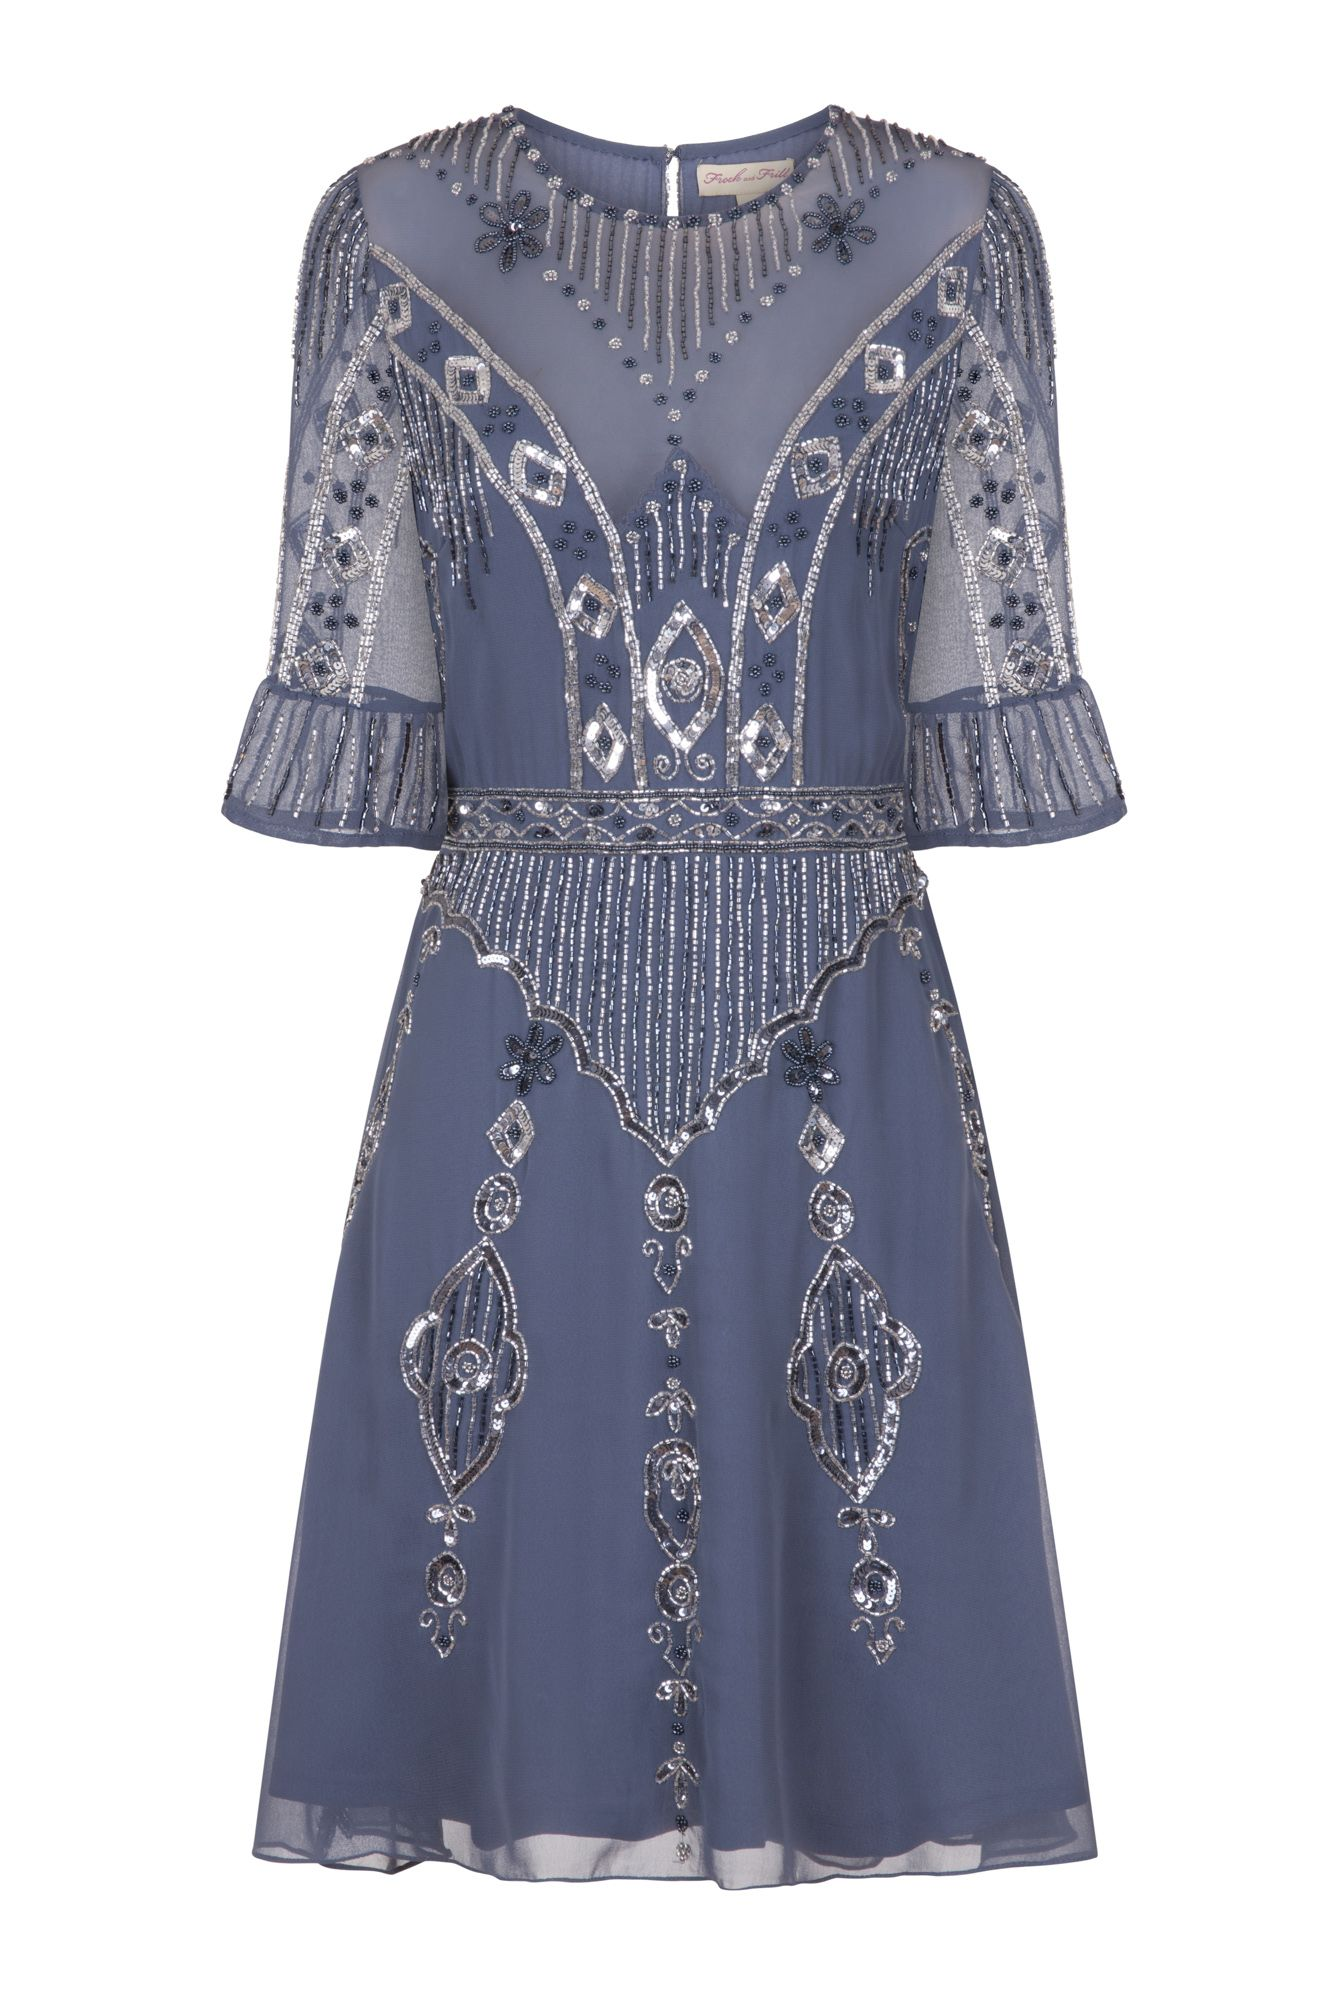 85614a5e4 Frock and Frill Daria Capped Sleeve Blue Grey Embellished Mini Dress